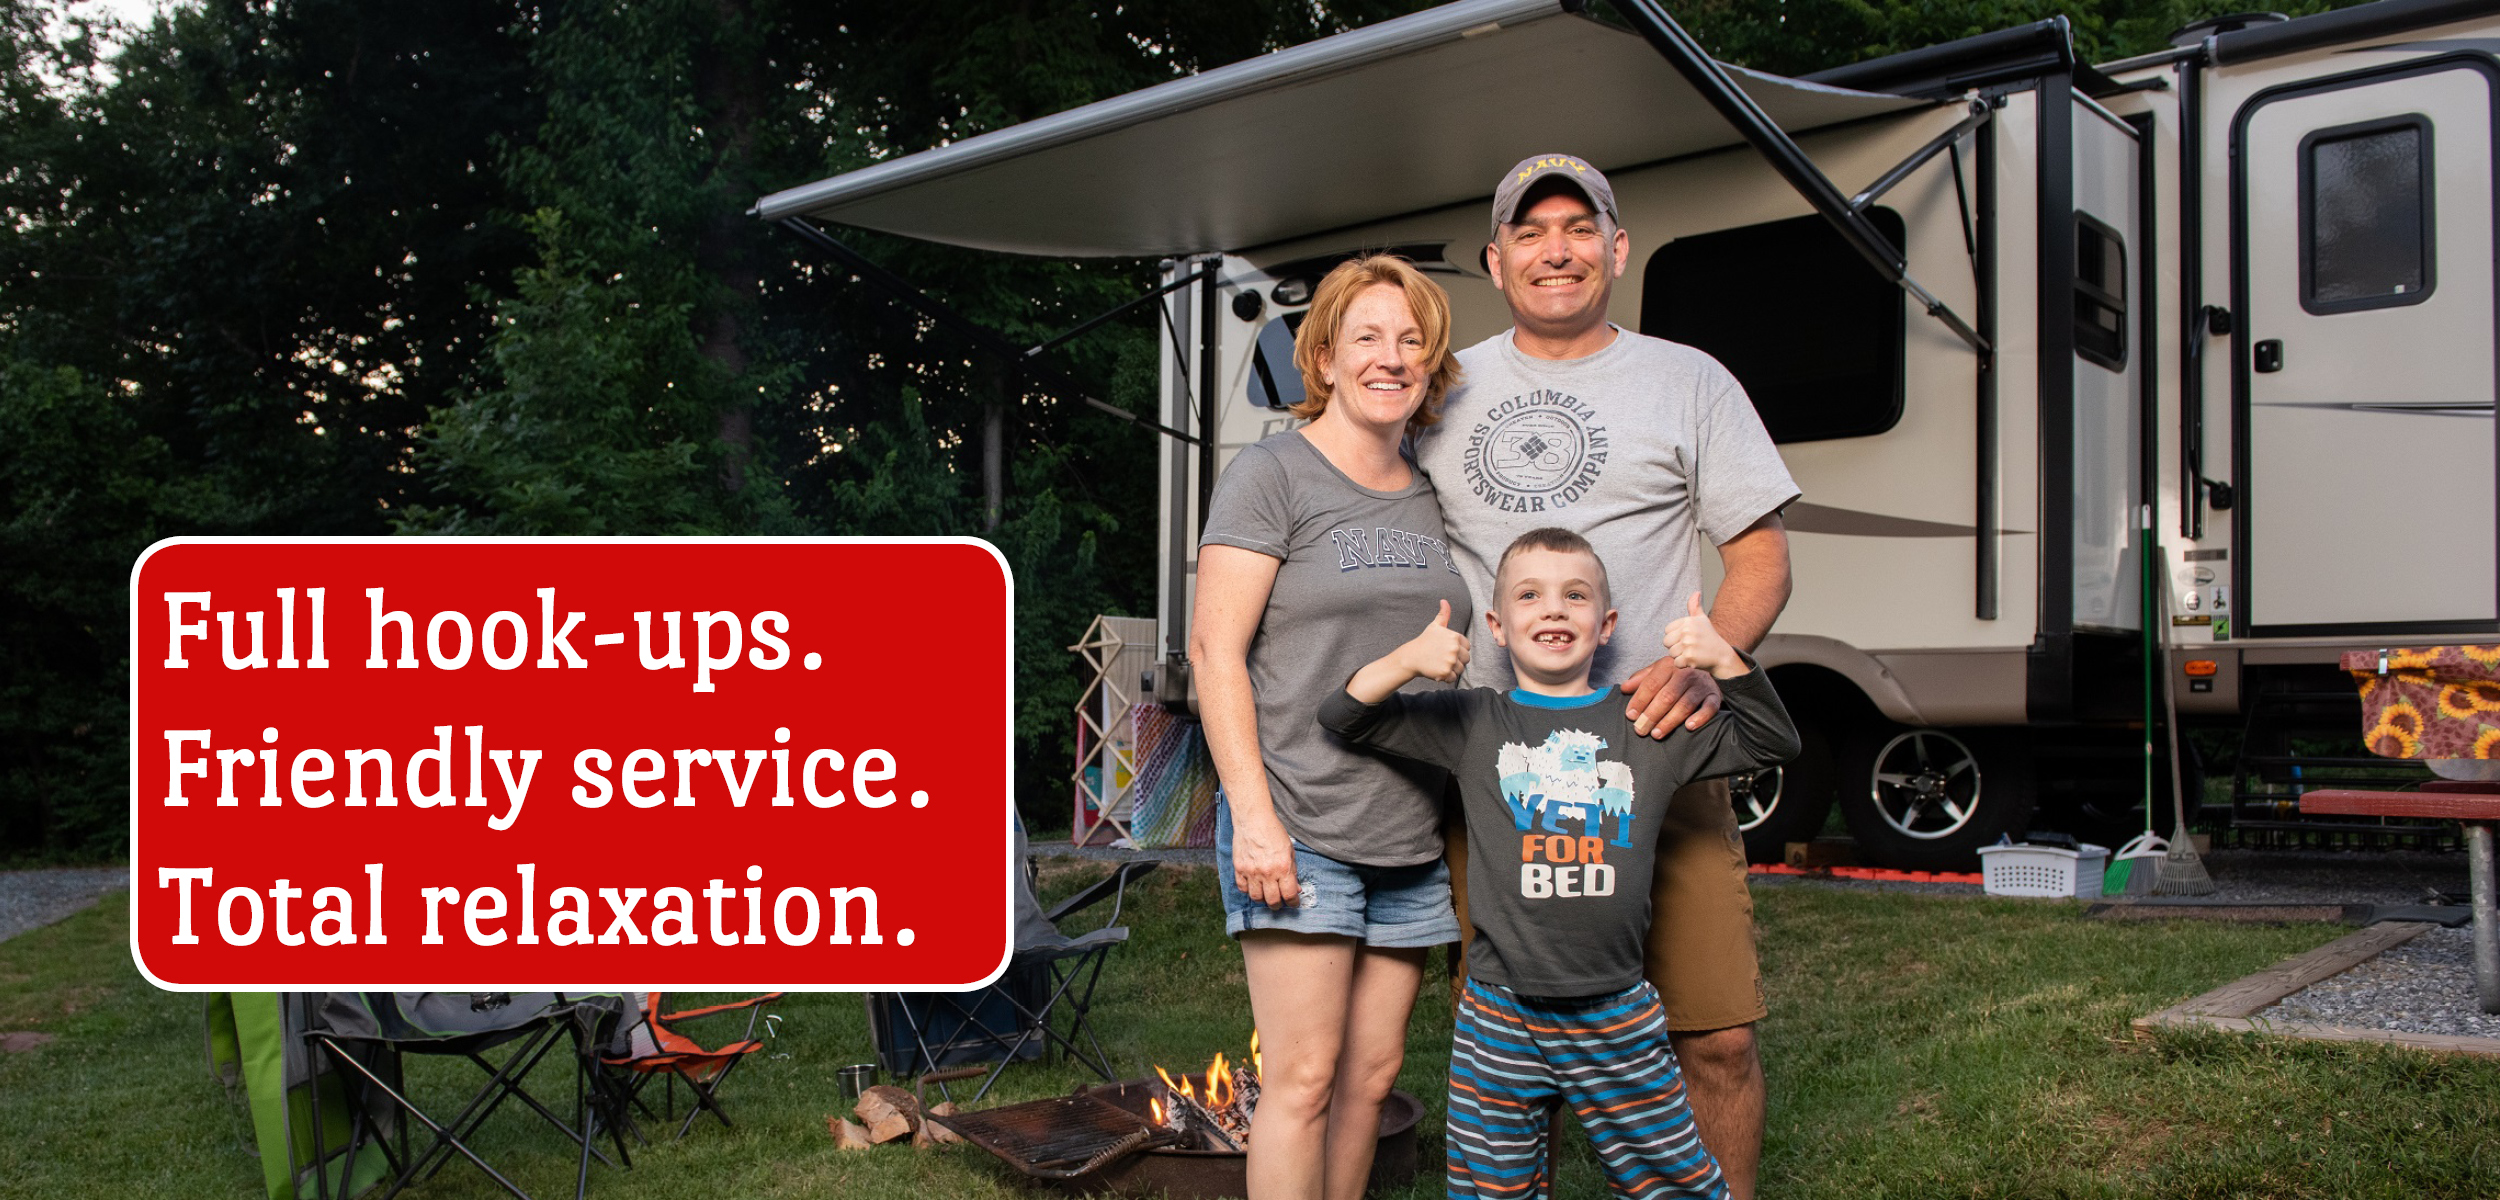 Family Camping at RV Site (Full Hook-ups. Friendly Service. Total relaxation.)